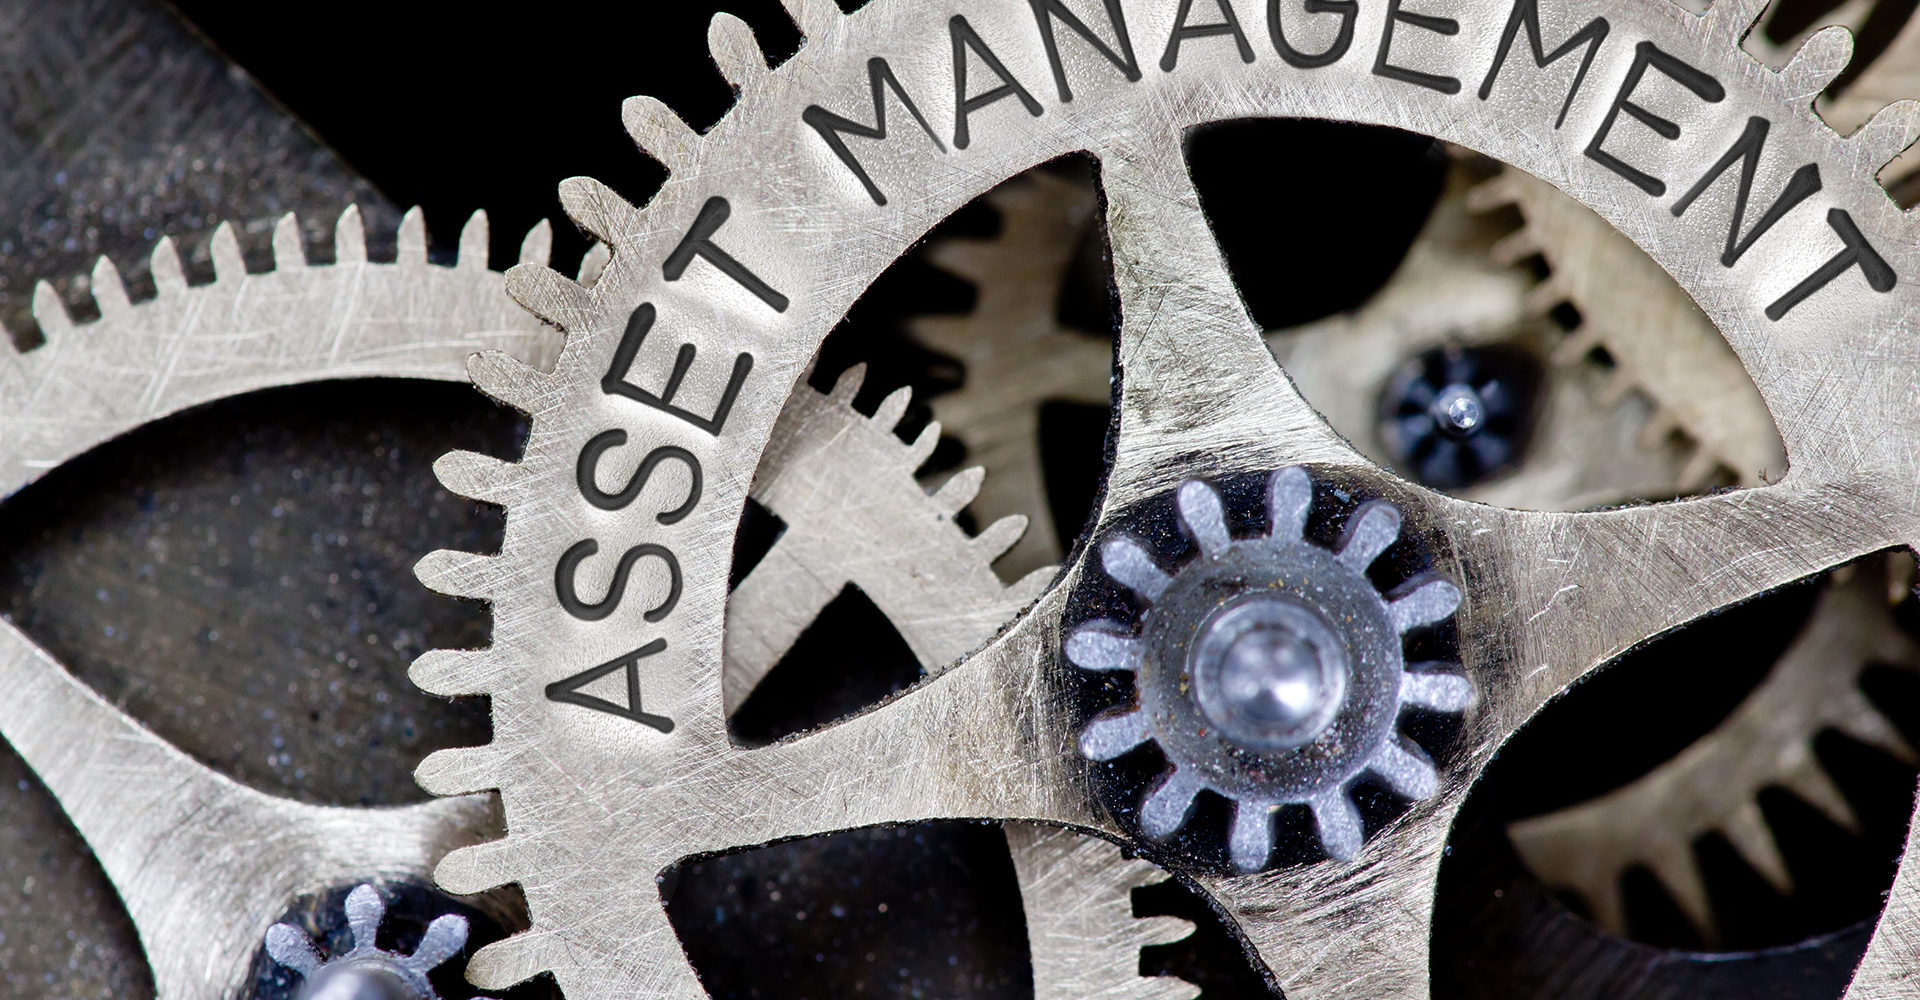 Benefits of Asset Management to Enhance Your Business